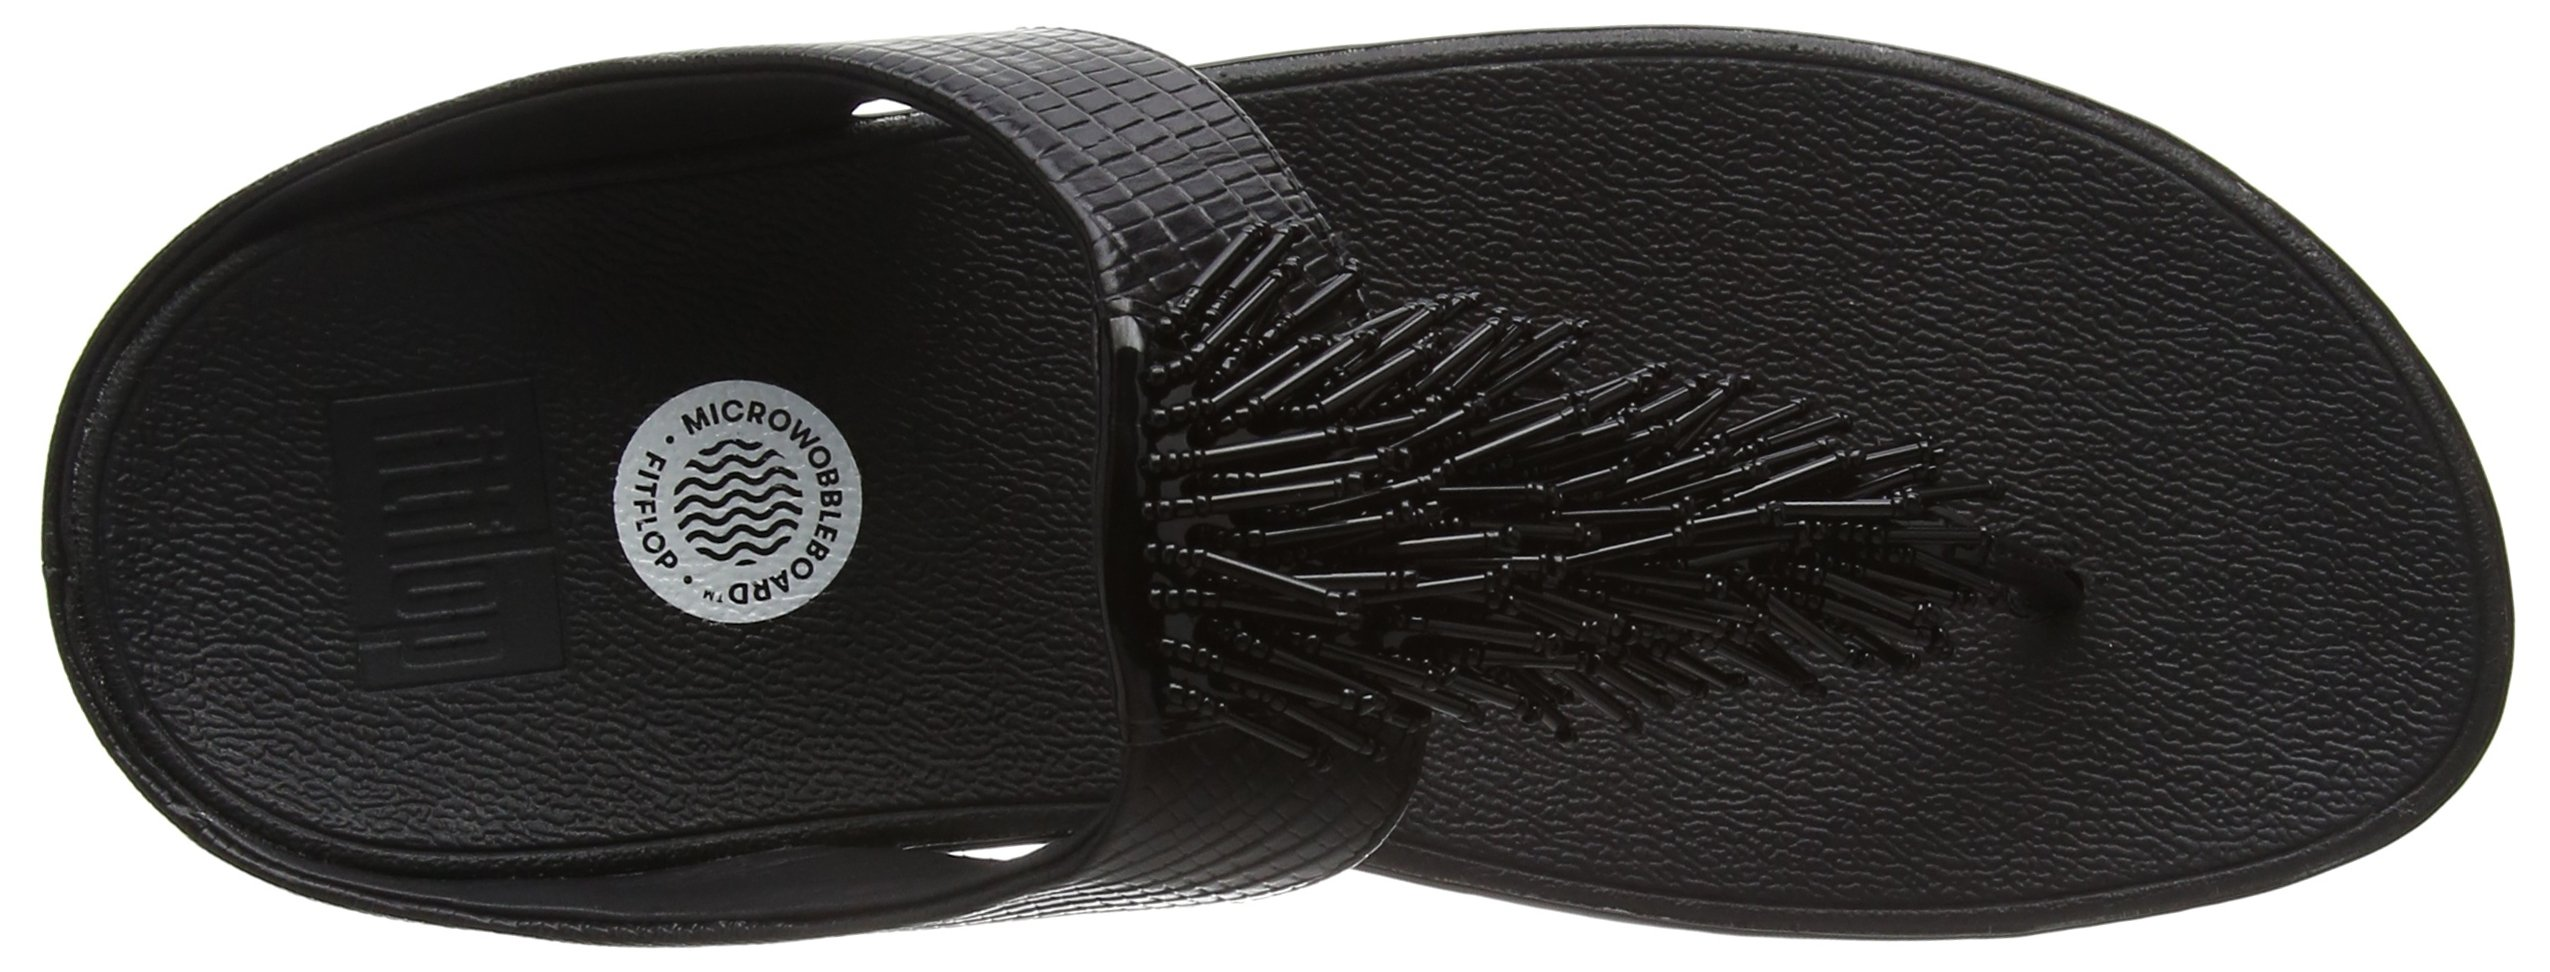 FITFLOP Women's Cha, Black, 8 M US by FITFLOP